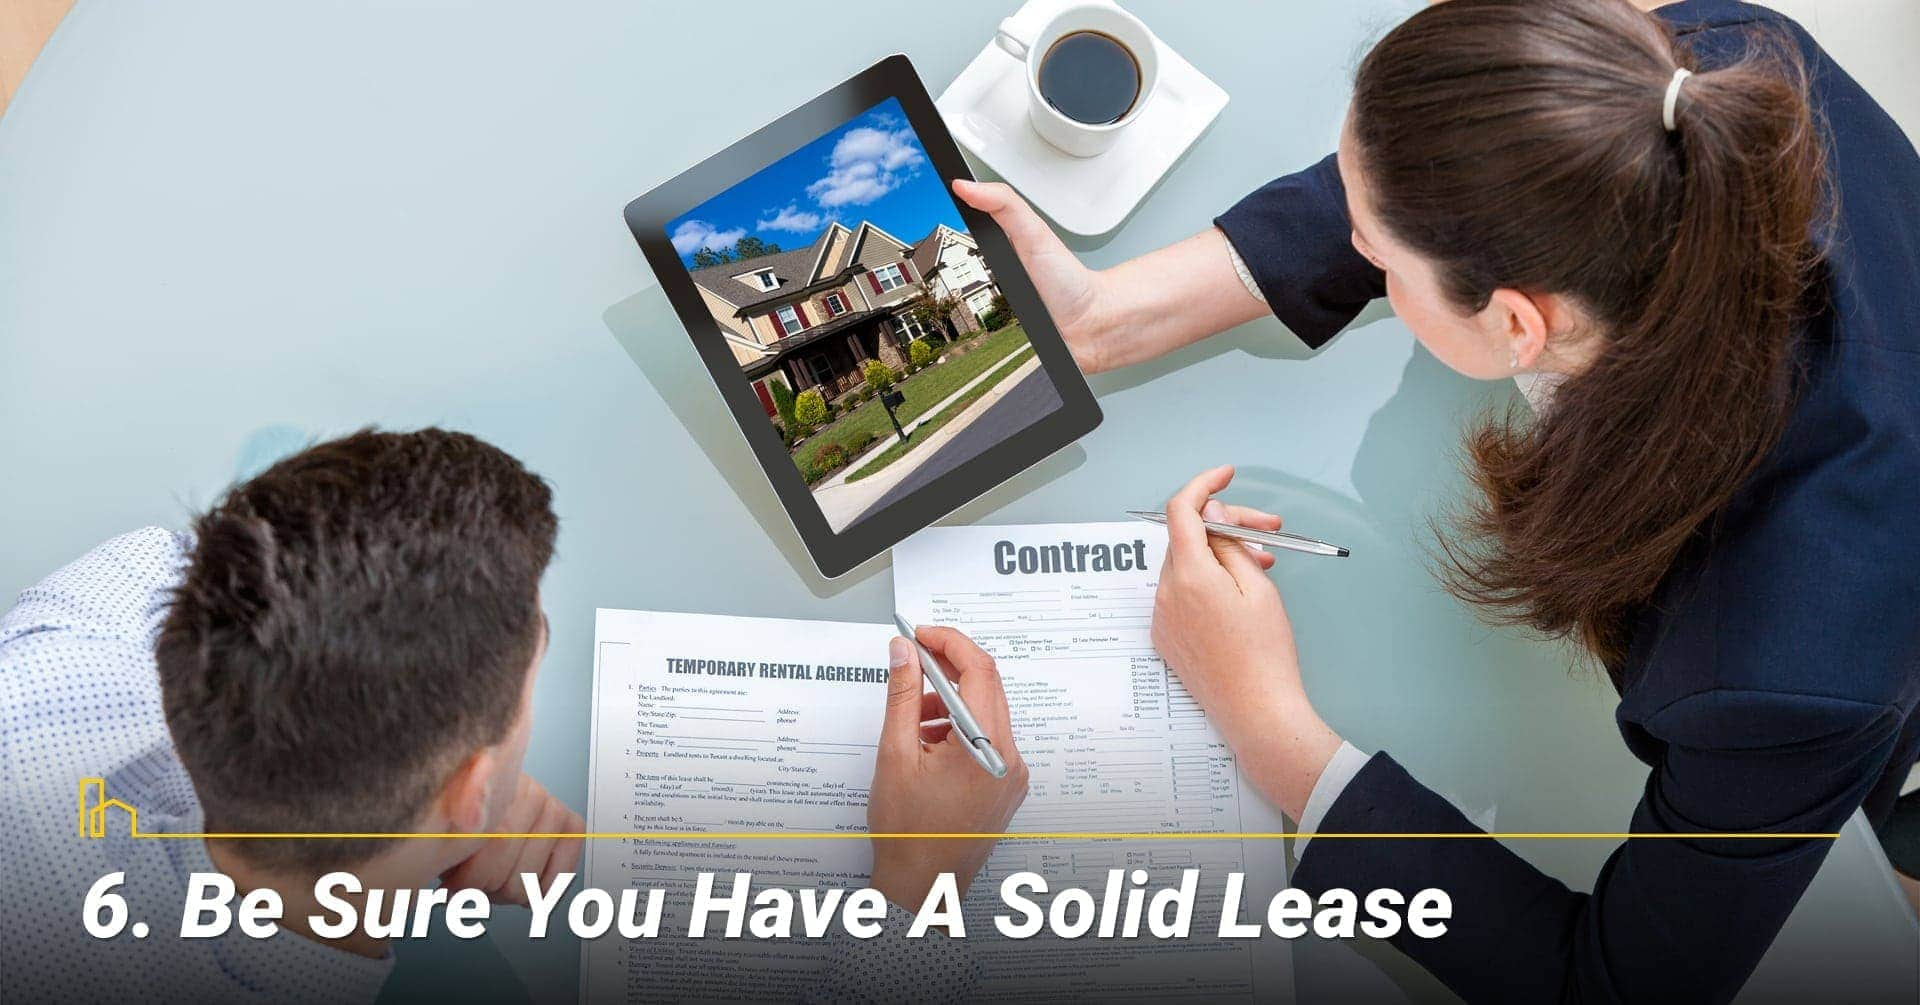 Be Sure You have a Solid Lease, know your lease